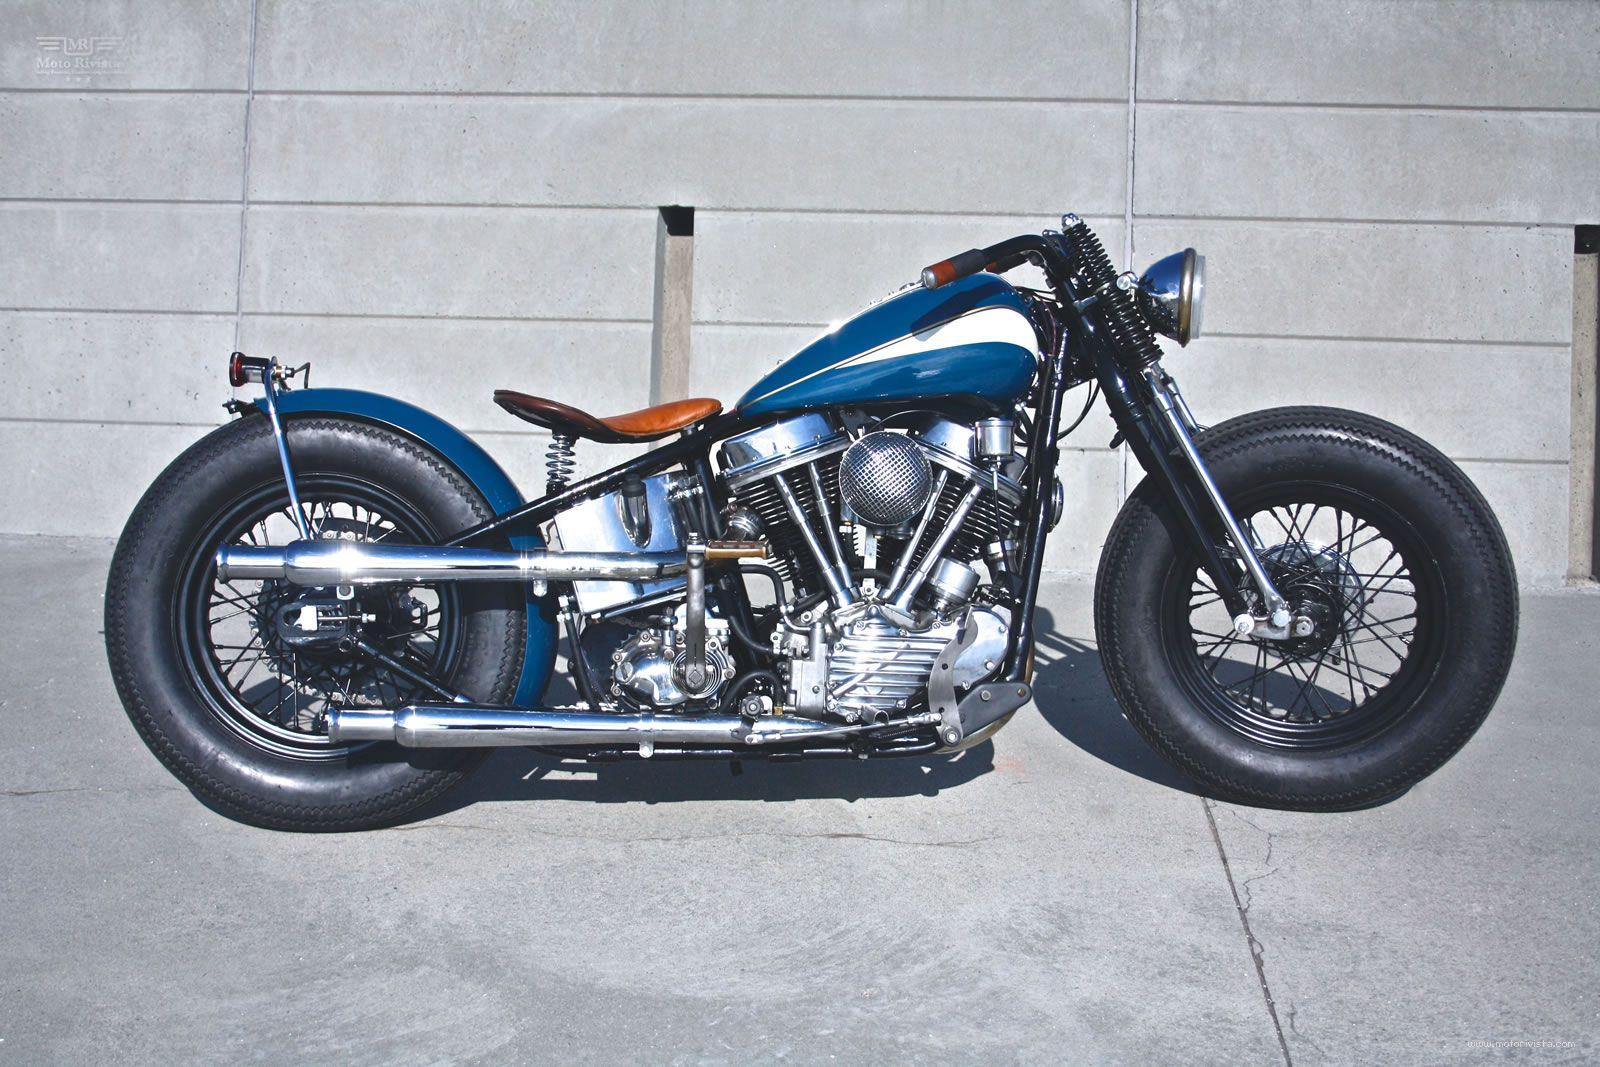 medium resolution of james from customs from jamesville has done it again this time he has created a bold and beautiful 48 custom panhead about a year ago i